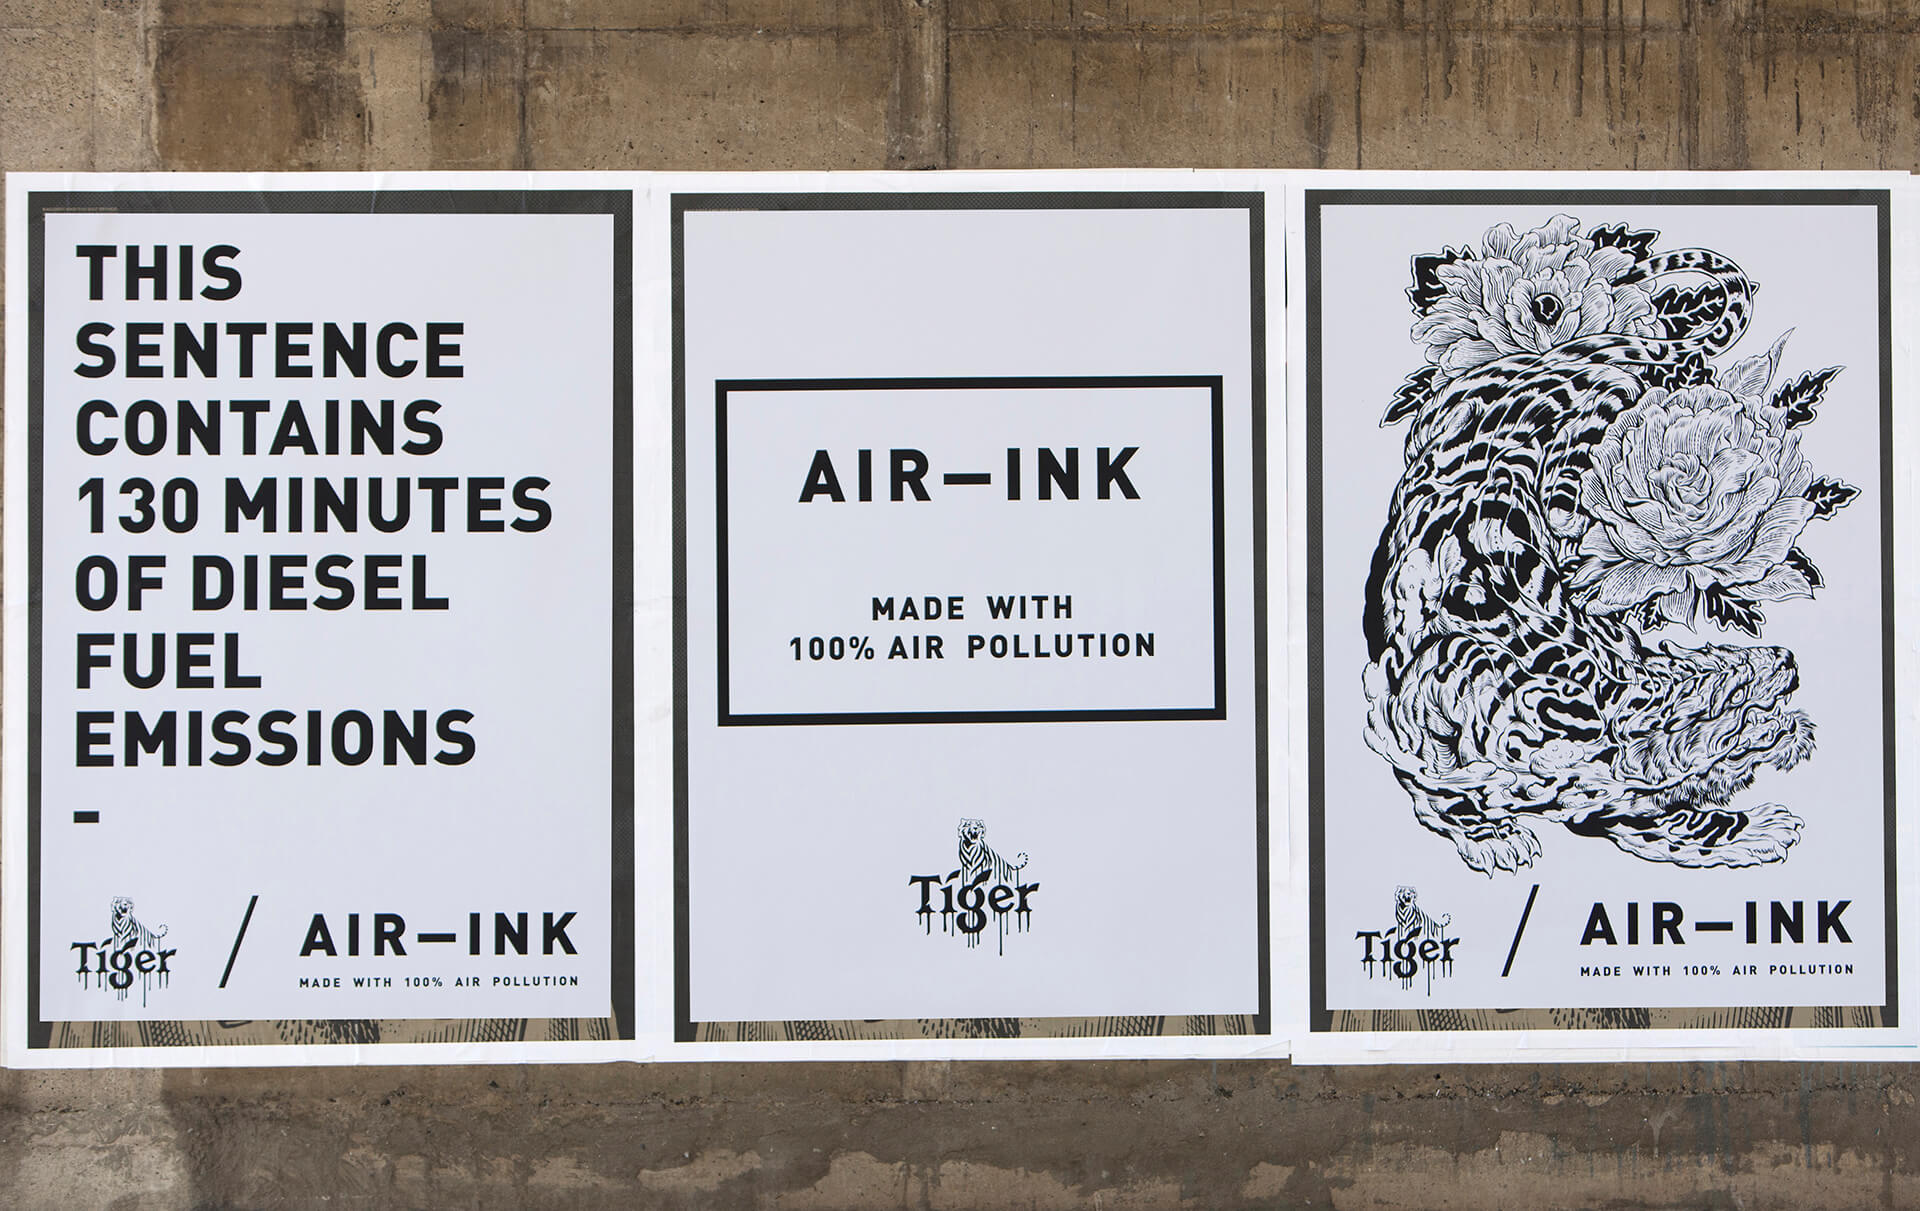 Posters by AIR-INK designed for various events and campaigns across the world | Graviky Labs | STIRworld